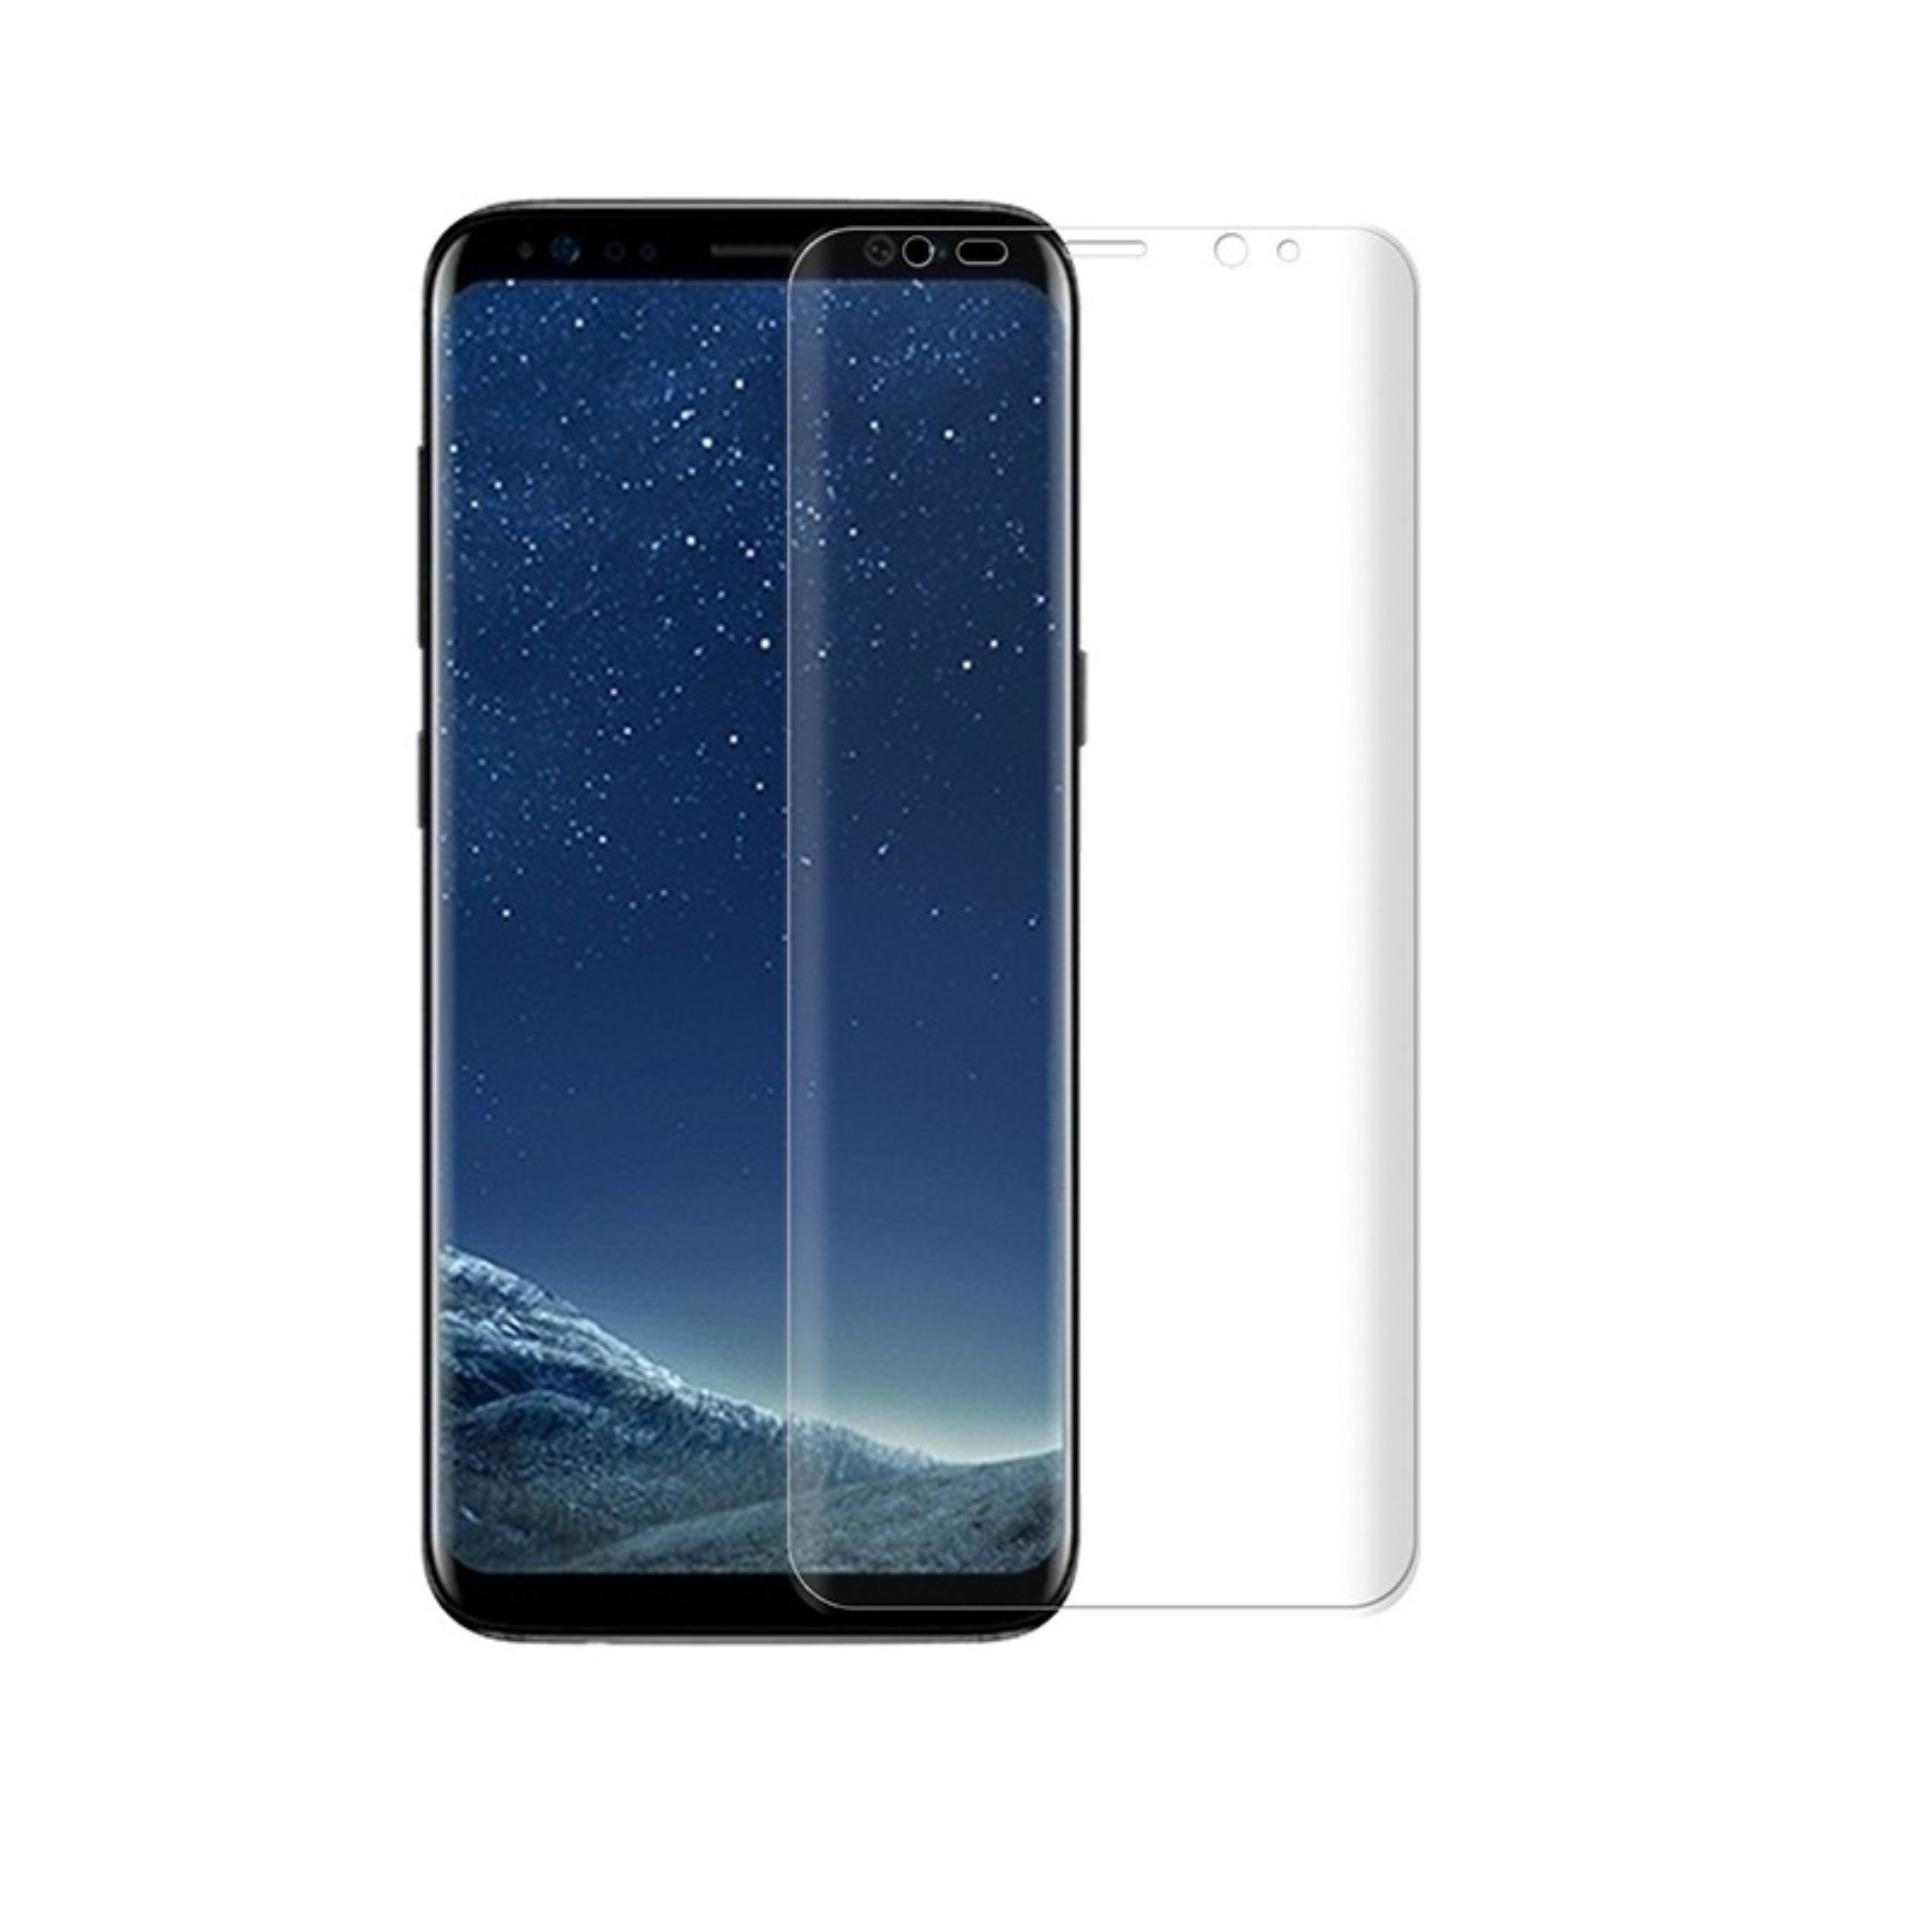 handphone samsung galaxy s9 plus Samsung Galaxy S9 PLUS Screenguard PET Full Cover Screen Protector Not